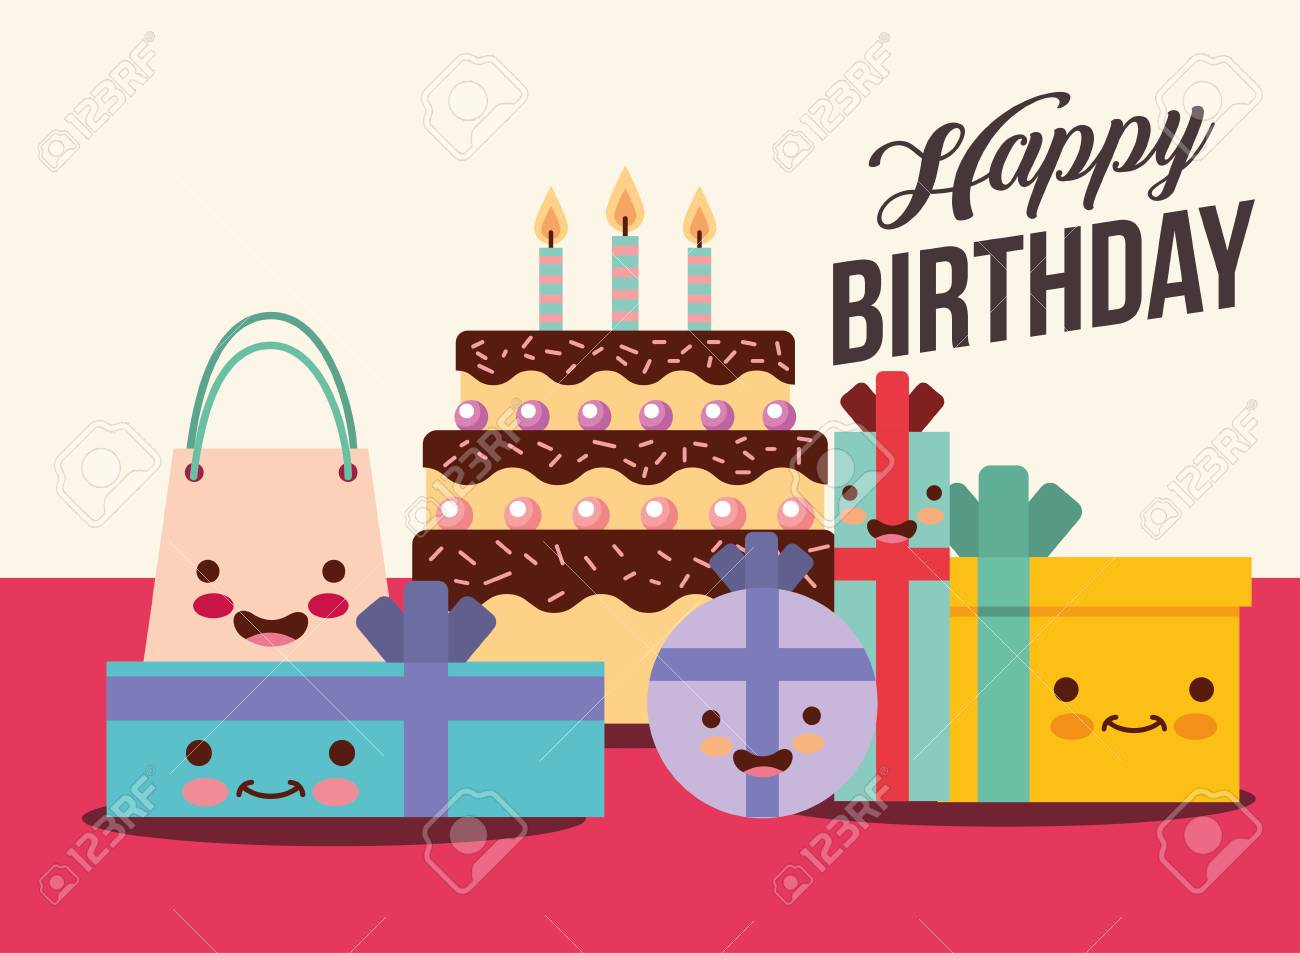 Set Of Gift Boxes And Cake Cartoon Happy Birthday Card Vector